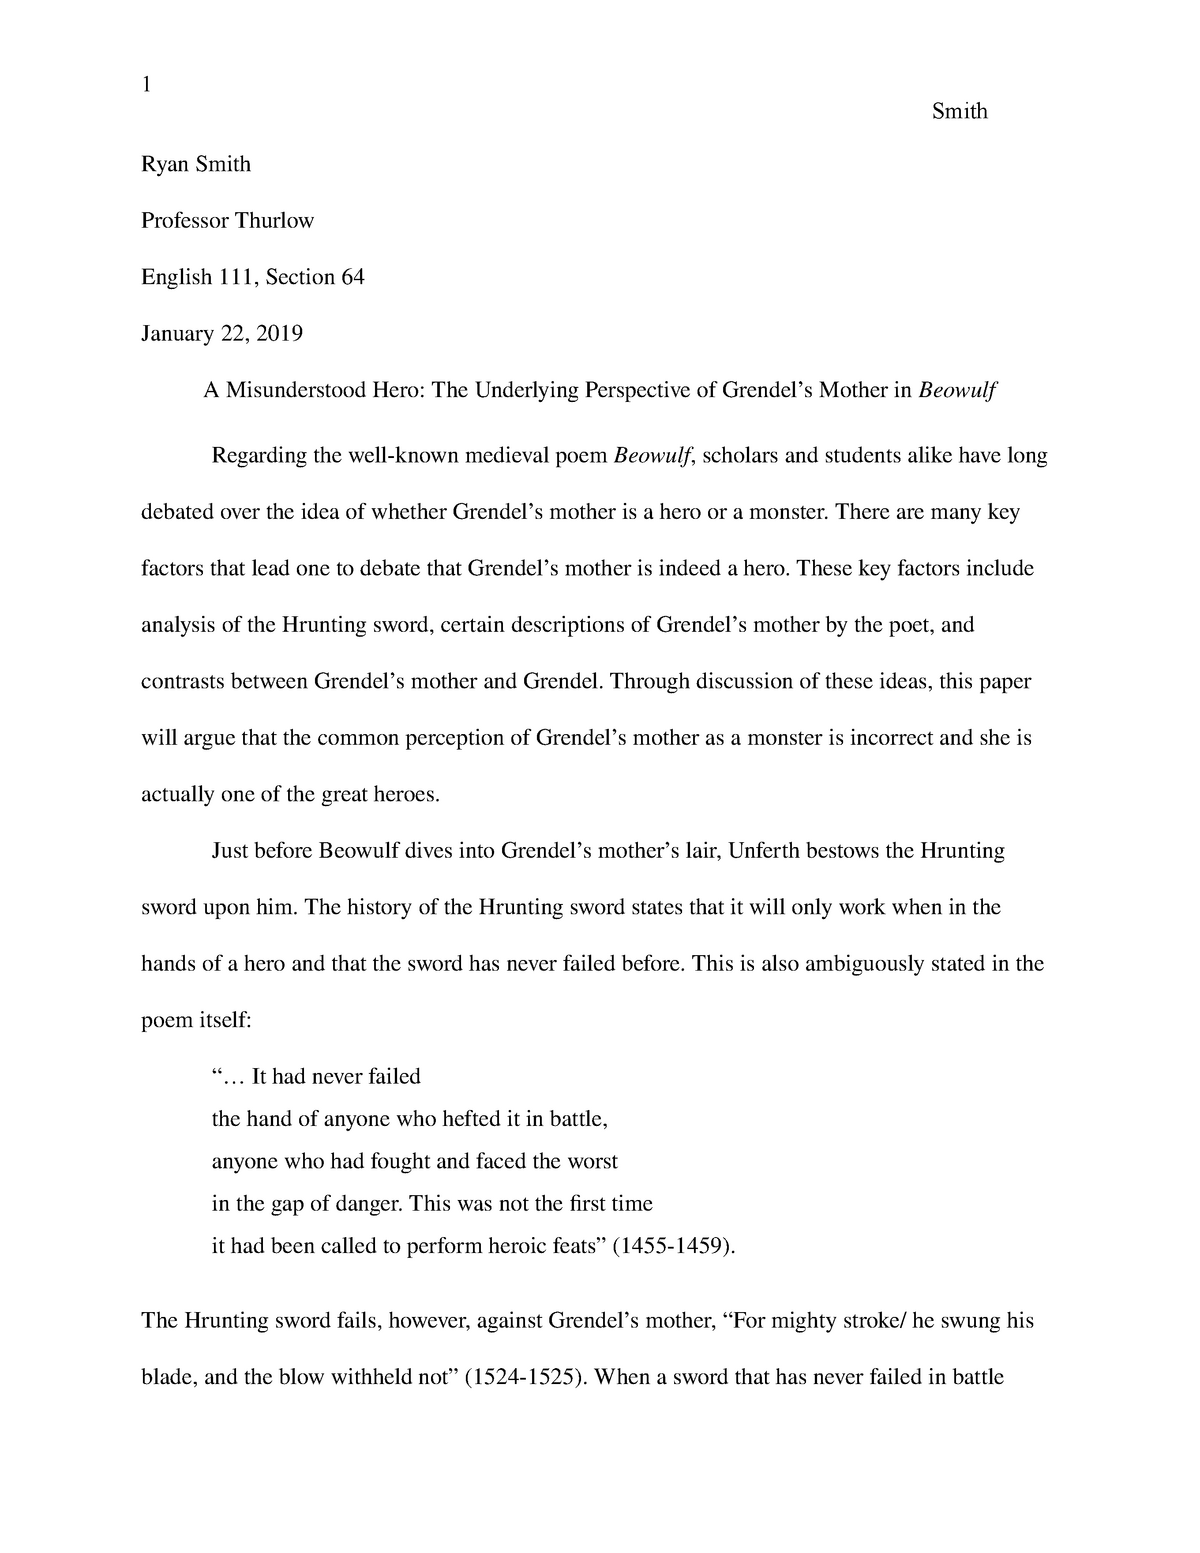 Help with popular critical analysis essay on usa